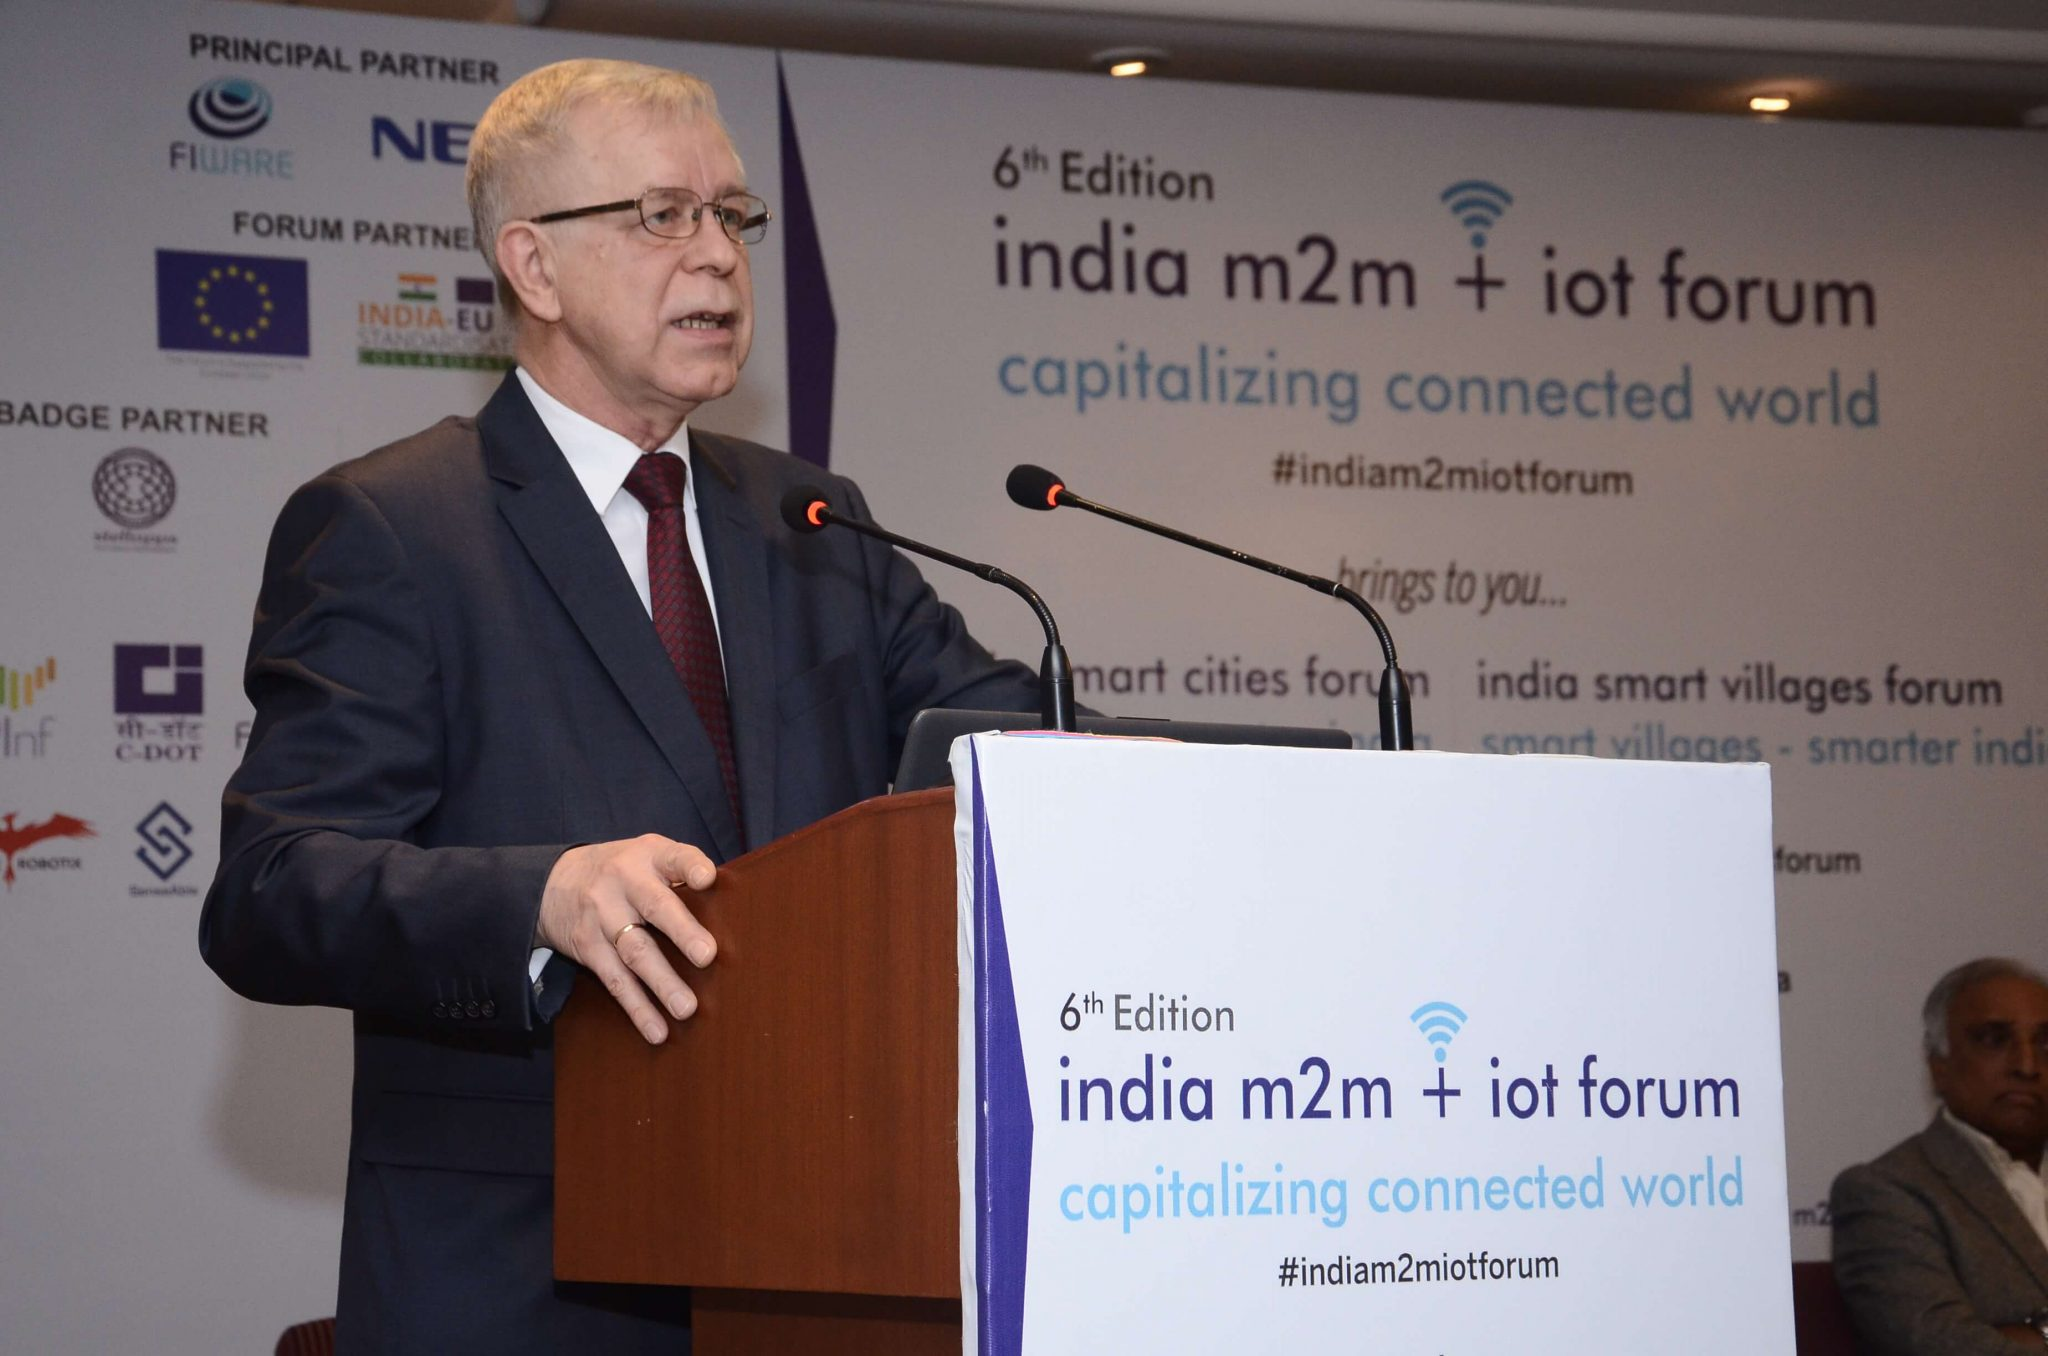 6th Edition of India m2m + iot Forum 2019